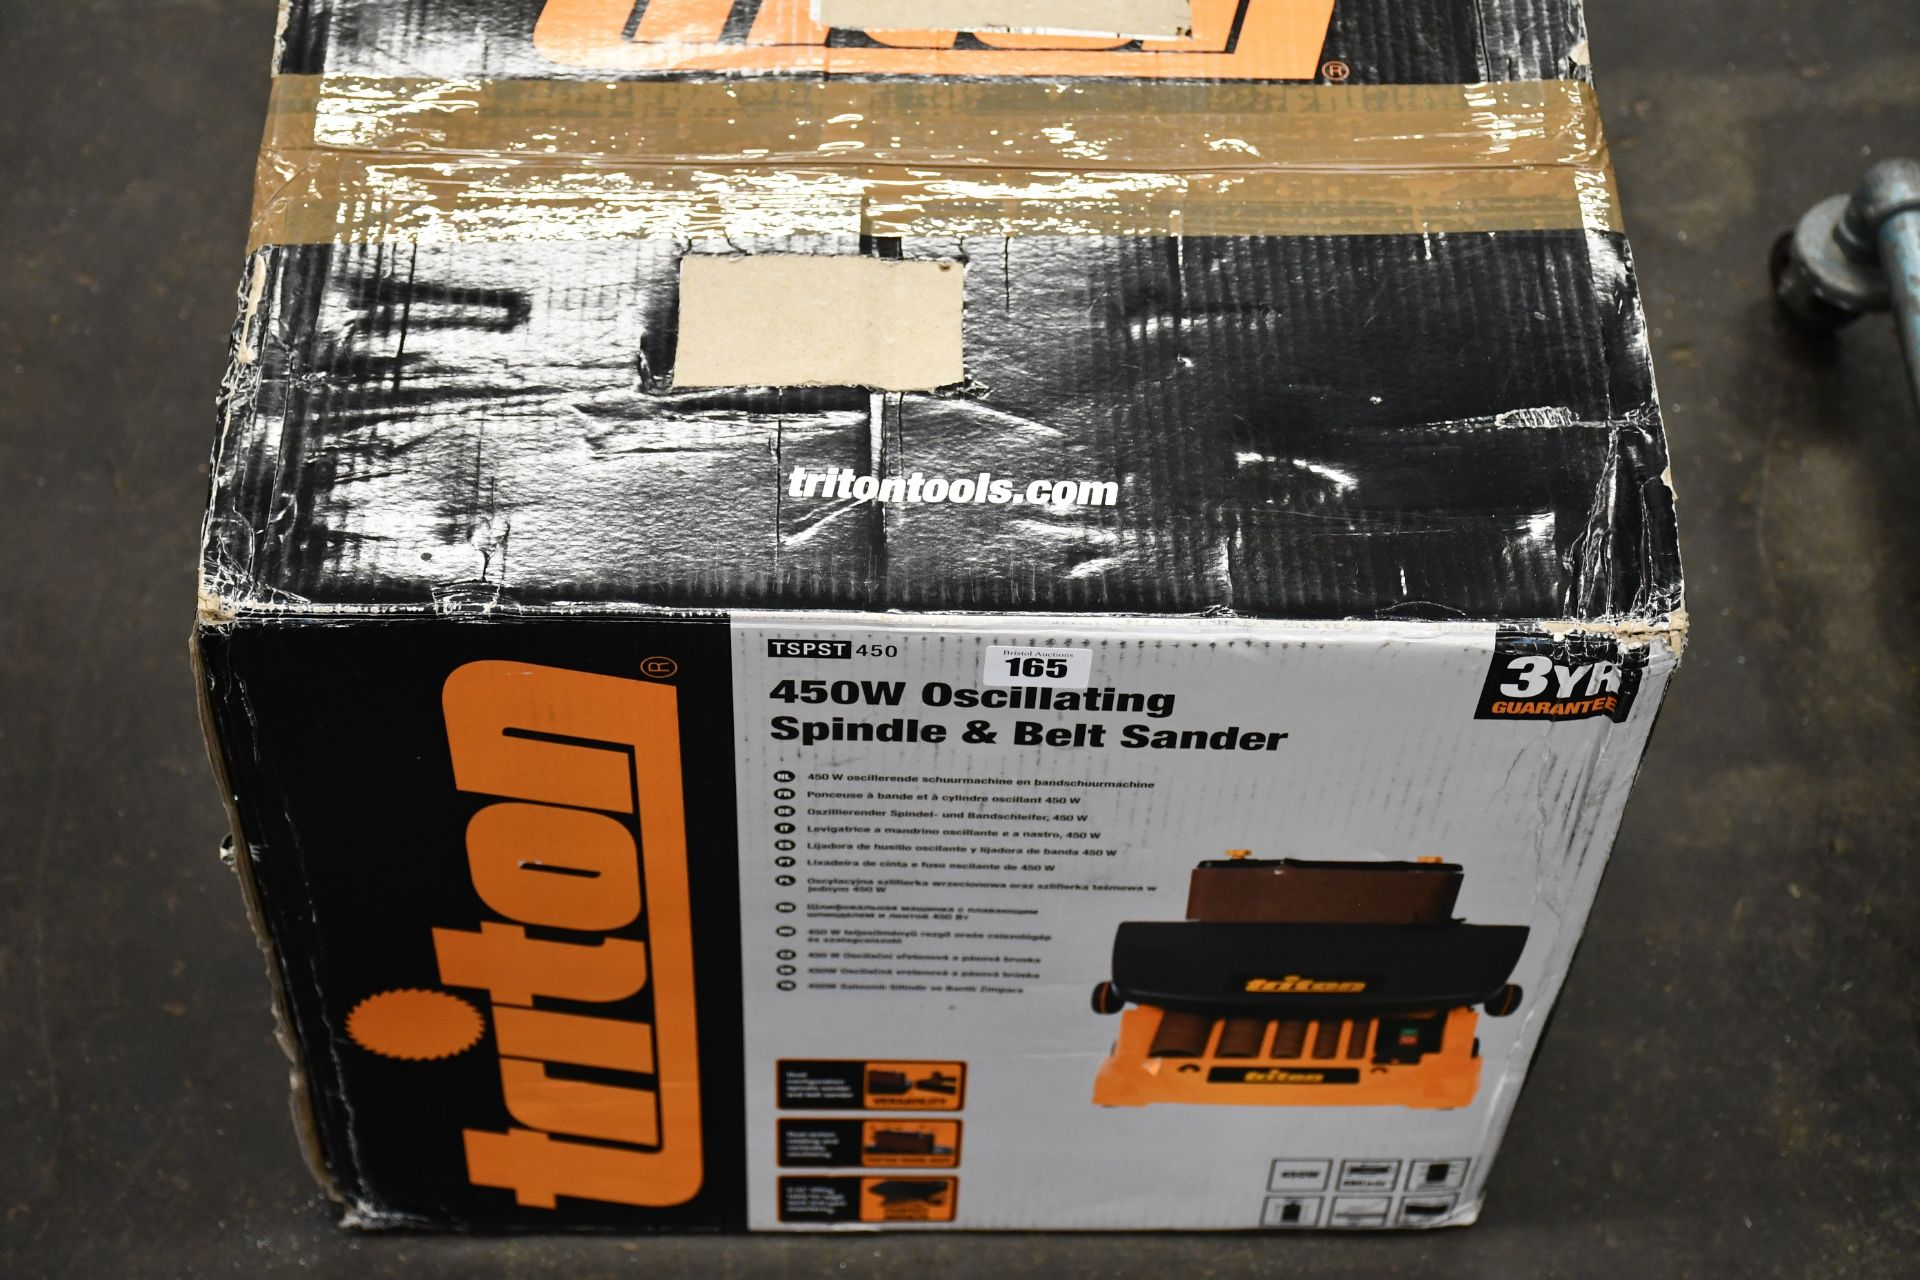 A boxed as new Triton Oscillating spindle and belt sander (450w).